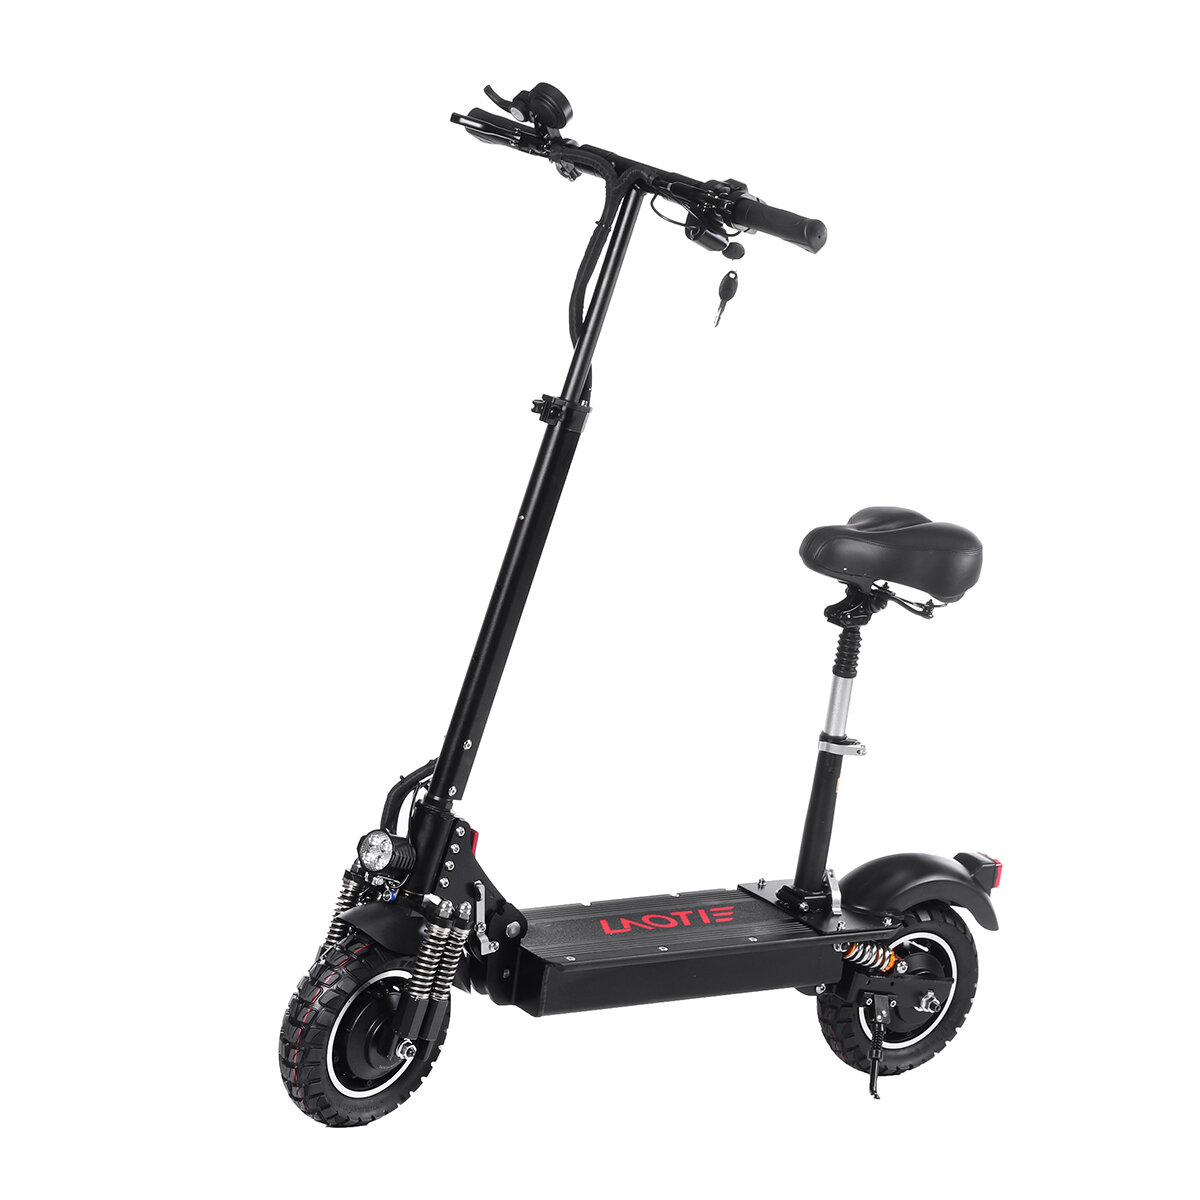 LAOTIE® ES10P 2000W Dual Motor 28.8Ah 21700 Battery 52V 10 Inches Folding Electric Scooter with Seat 70km/h Top Speed 100km Mileage Max Load 120kg